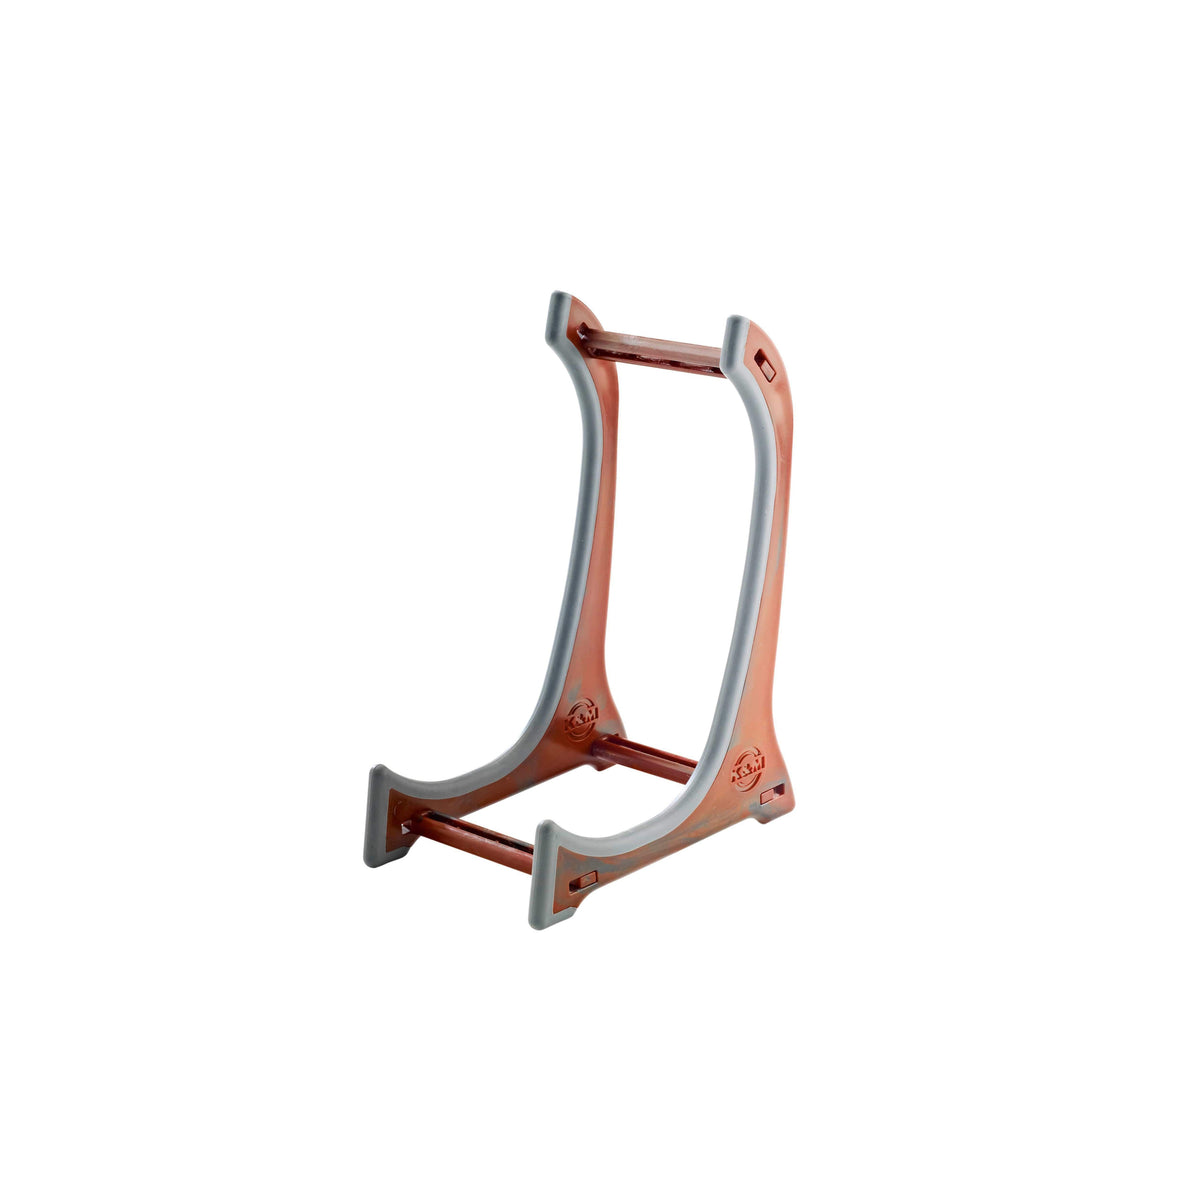 König & Meyer Accessories K&M Violin Display Stand